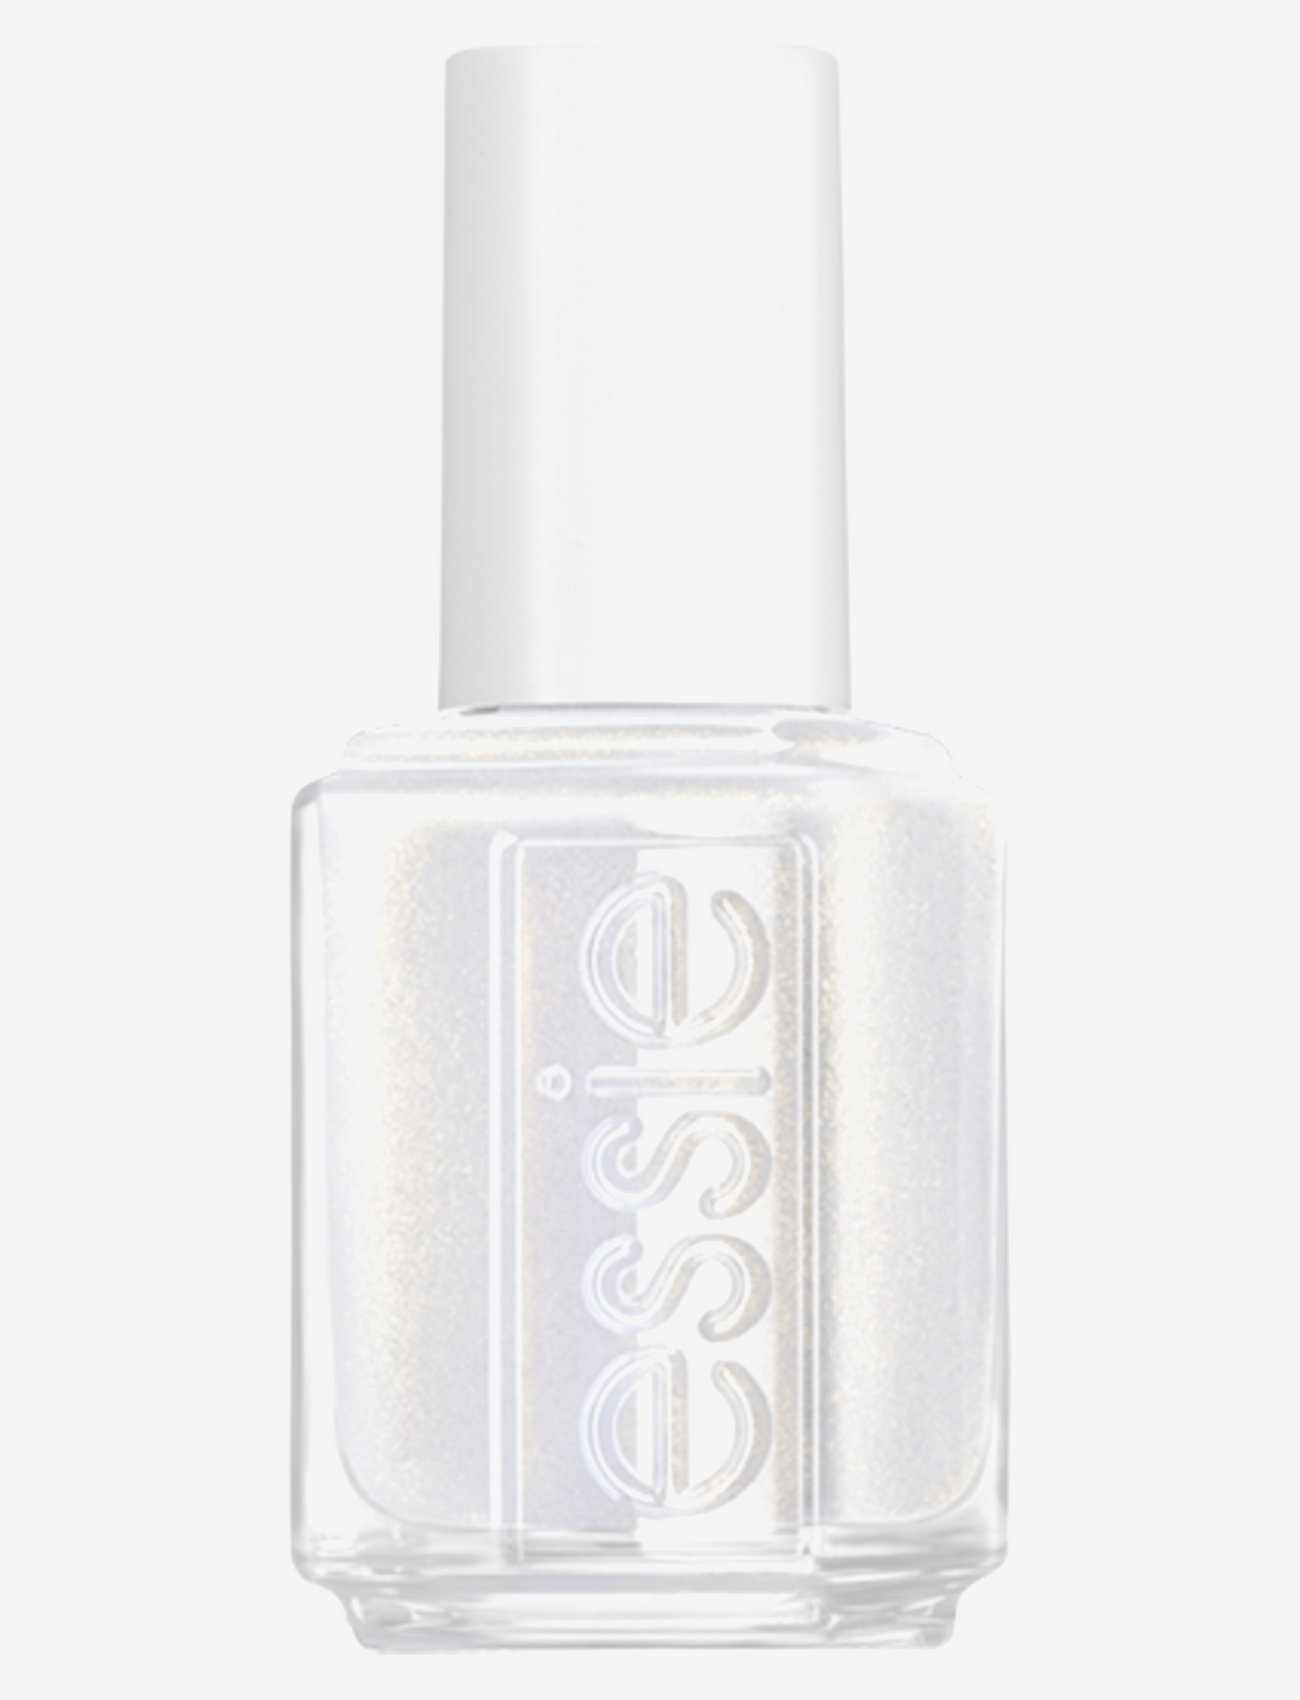 Essie - essie classic - winter collection twinkle in time 742 - nagellack - twinkle in time 742 - 0